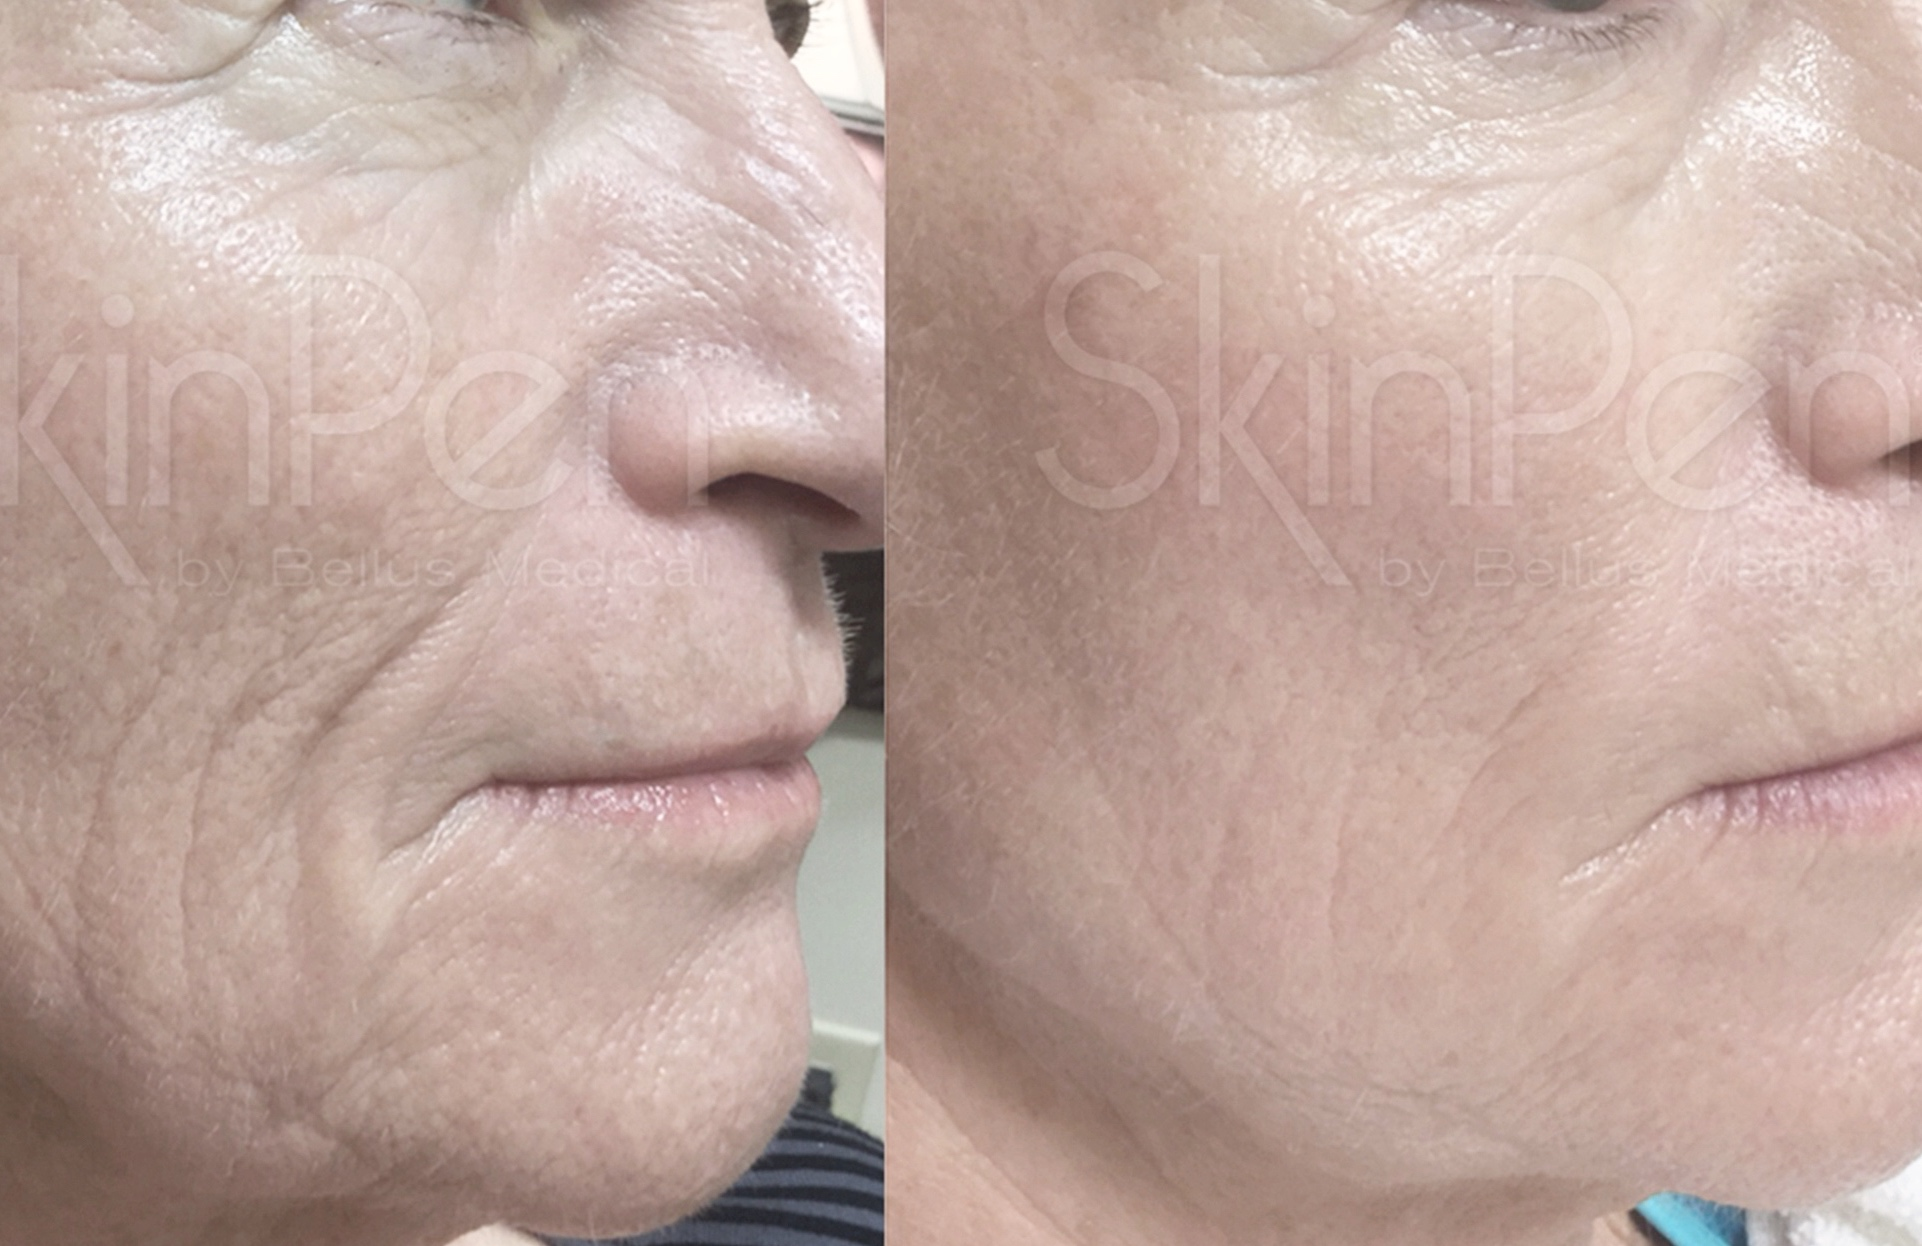 Reverse Revive Reveal - Reverse Revive Reveal is our Collagen induction therapy, also known as Microneedling. We use the FDA approved SkinPen device to organically stimulate the skin's natural ability to repair itself. This process results in the formation and remodelling of Collagen, resulting in more youthful smoother and tighter looking skin.